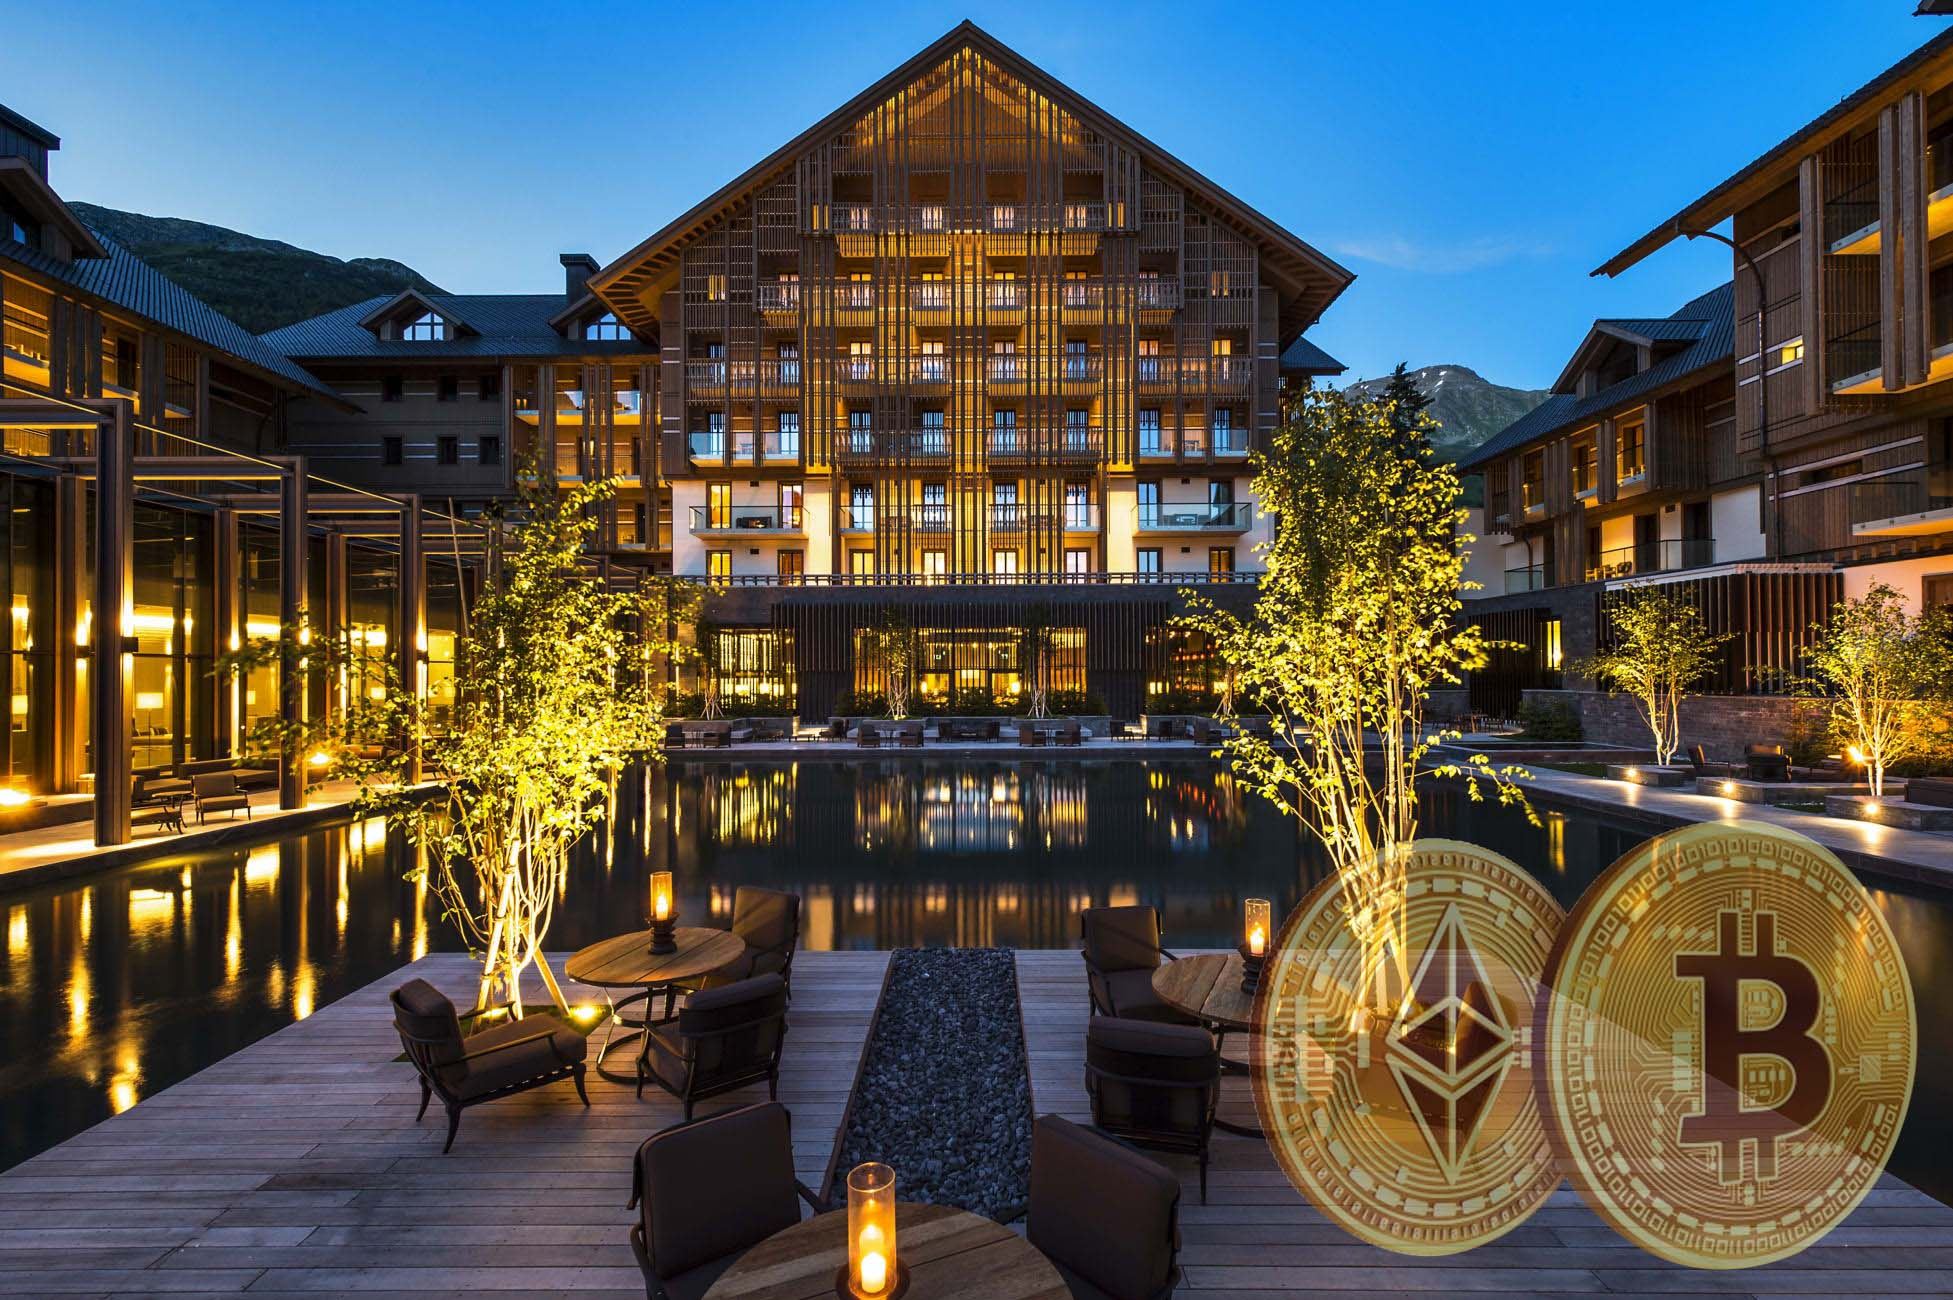 Five-star hotel, Chedi Andermatt, in the Swiss Alps confronts the issues of accepting Bitcoin and Ethereum as payment